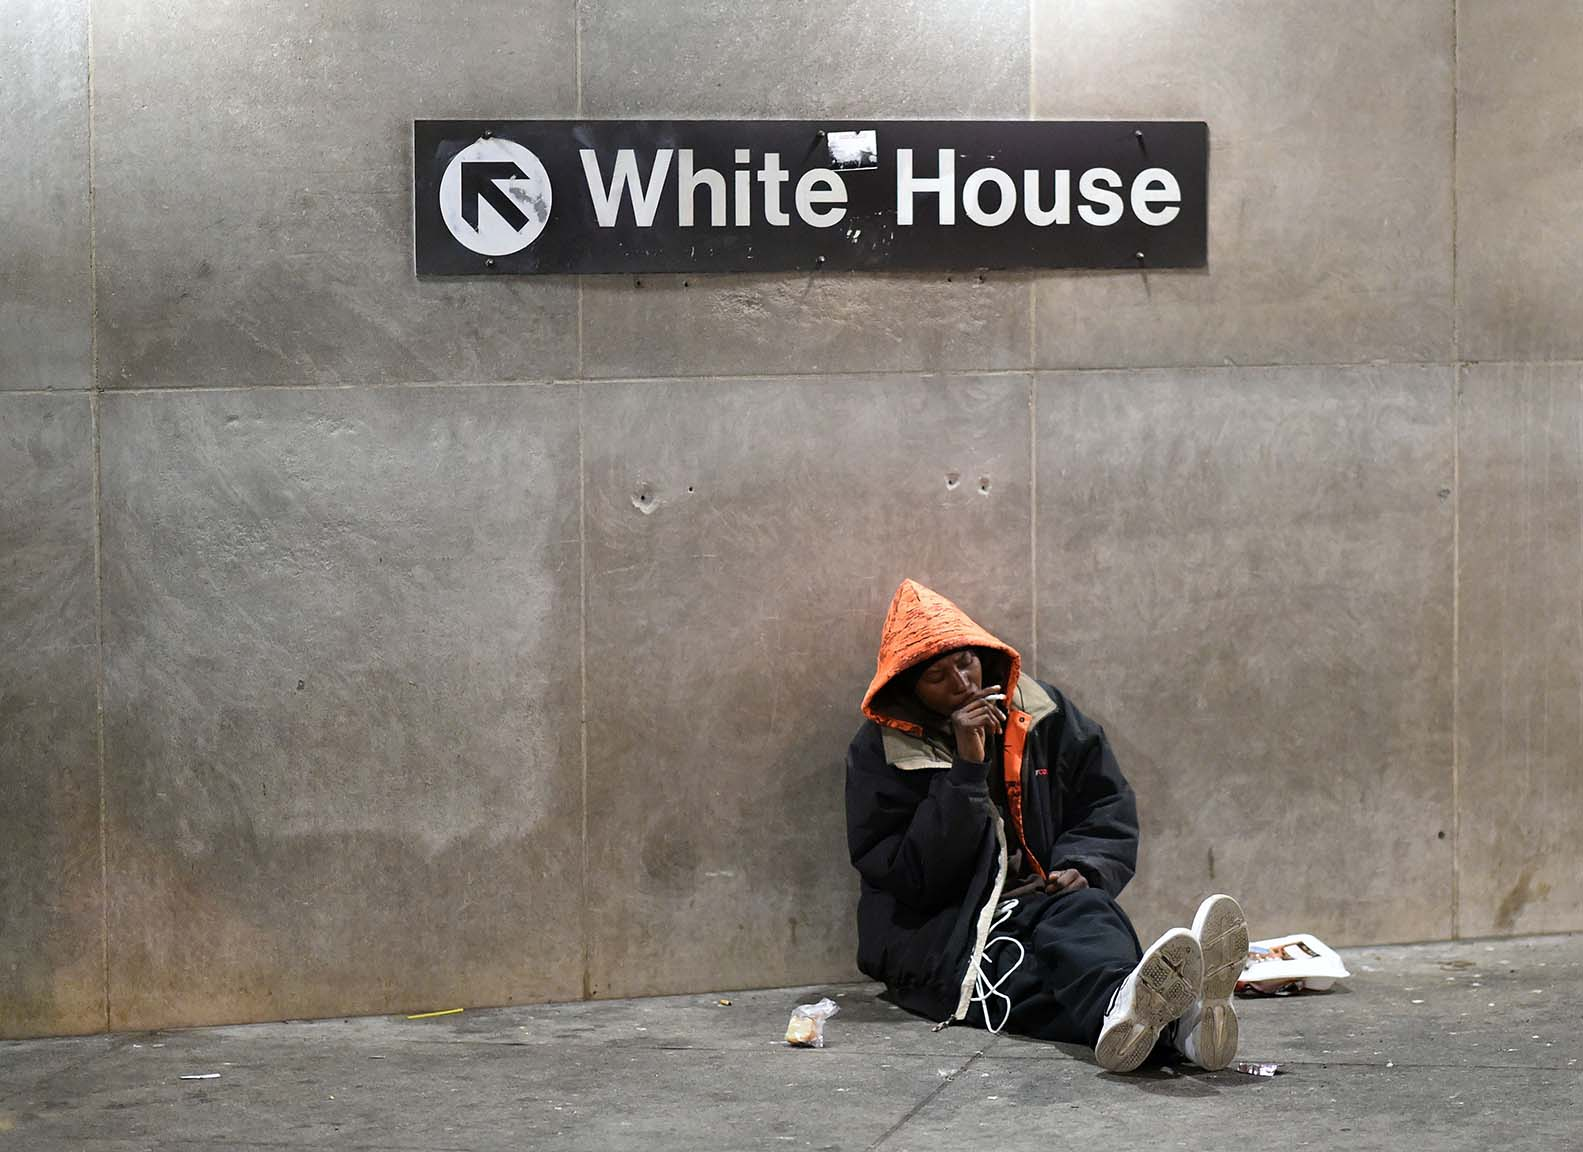 A homeless man sits under a sign giving directions to the White House